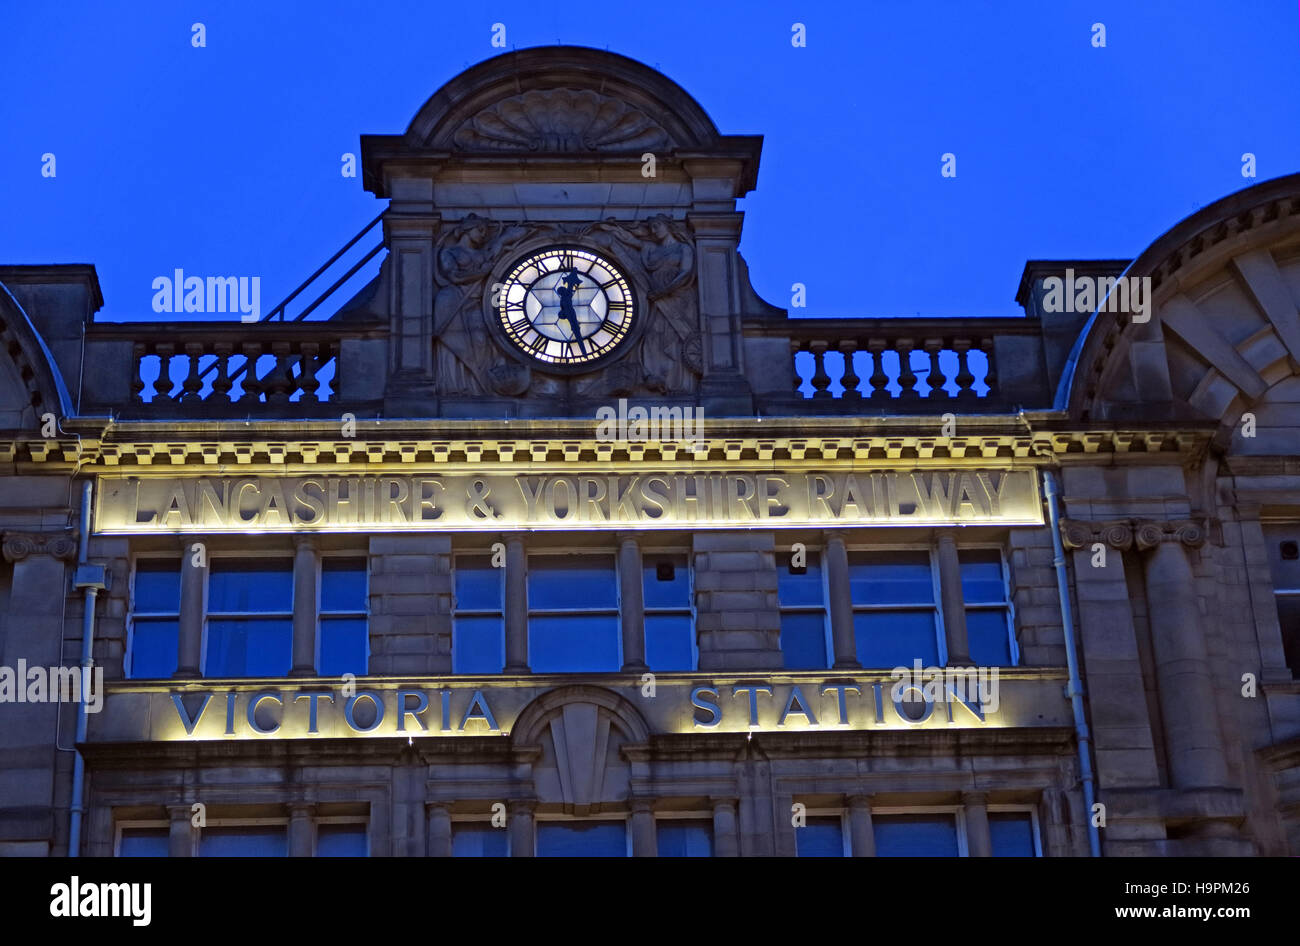 transit,city,centre,clock,night,Yorkshire,Railway,nightshot,blue,hour,Lancashire,queen,M3,building,rail,Manchester Victoria,City Centre,Lancashire & Yorkshire Railway,Lancashire Railway,Yorkshire Railway,blue hour,Victoria Station,Queen Victoria,Victoria Station Approach,GoTonySmith,@HotpixUK,Tony,Smith,UK,GB,Great,Britain,United,Kingdom,English,British,England,railtrack,network,northern,powerhouse,NW,GM,Buy Pictures of,Buy Images Of,Images of,Stock Images,Tony Smith,United Kingdom,Great Britain,British Isles,Lancashire and Yorkshire Railway,Network Rail,northern powerhouse,Greater Manchester